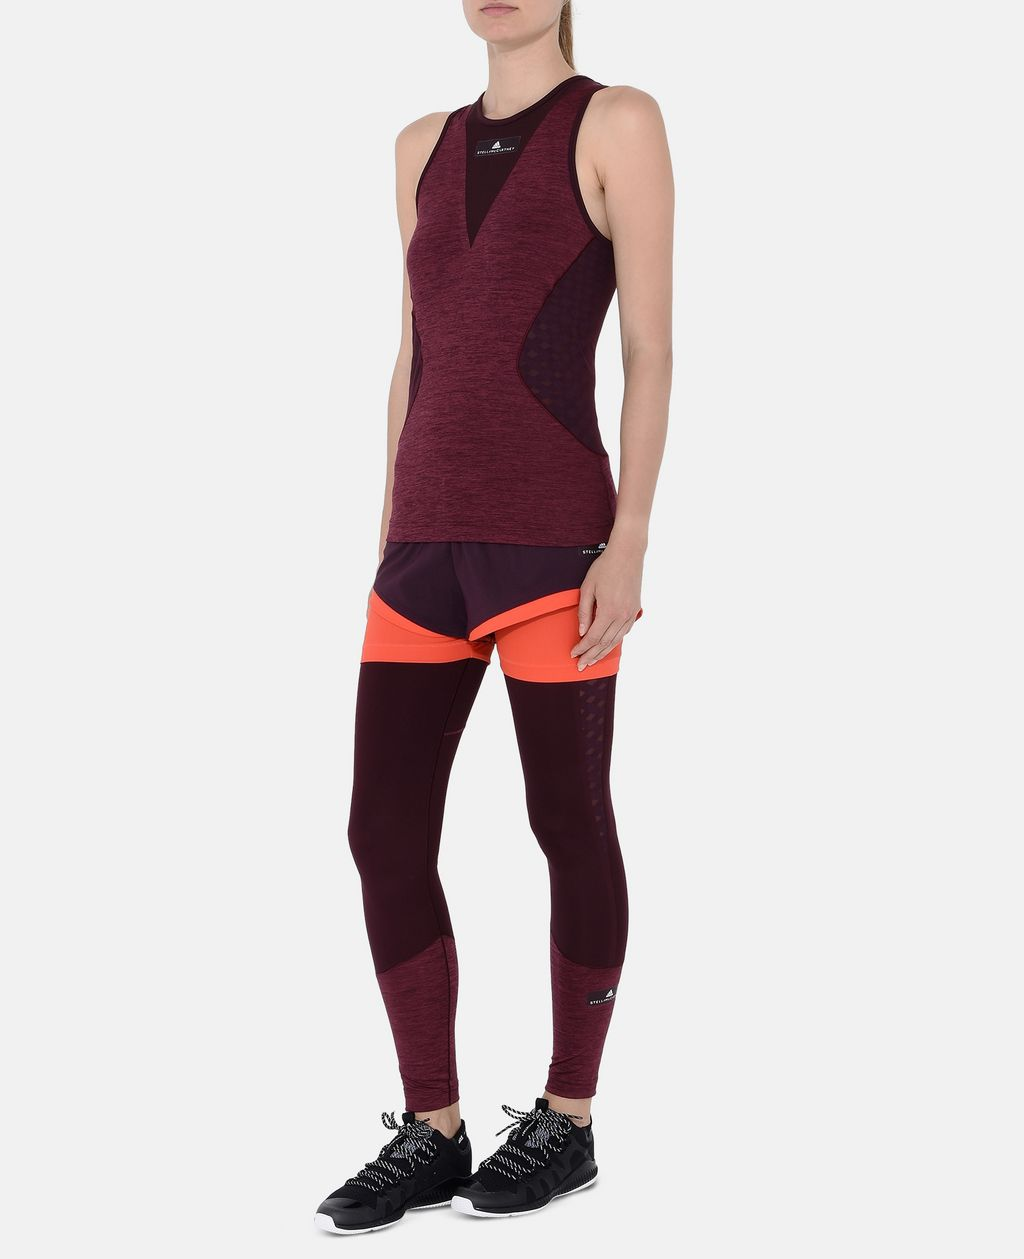 Red Training Tank - ADIDAS by STELLA McCARTNEY